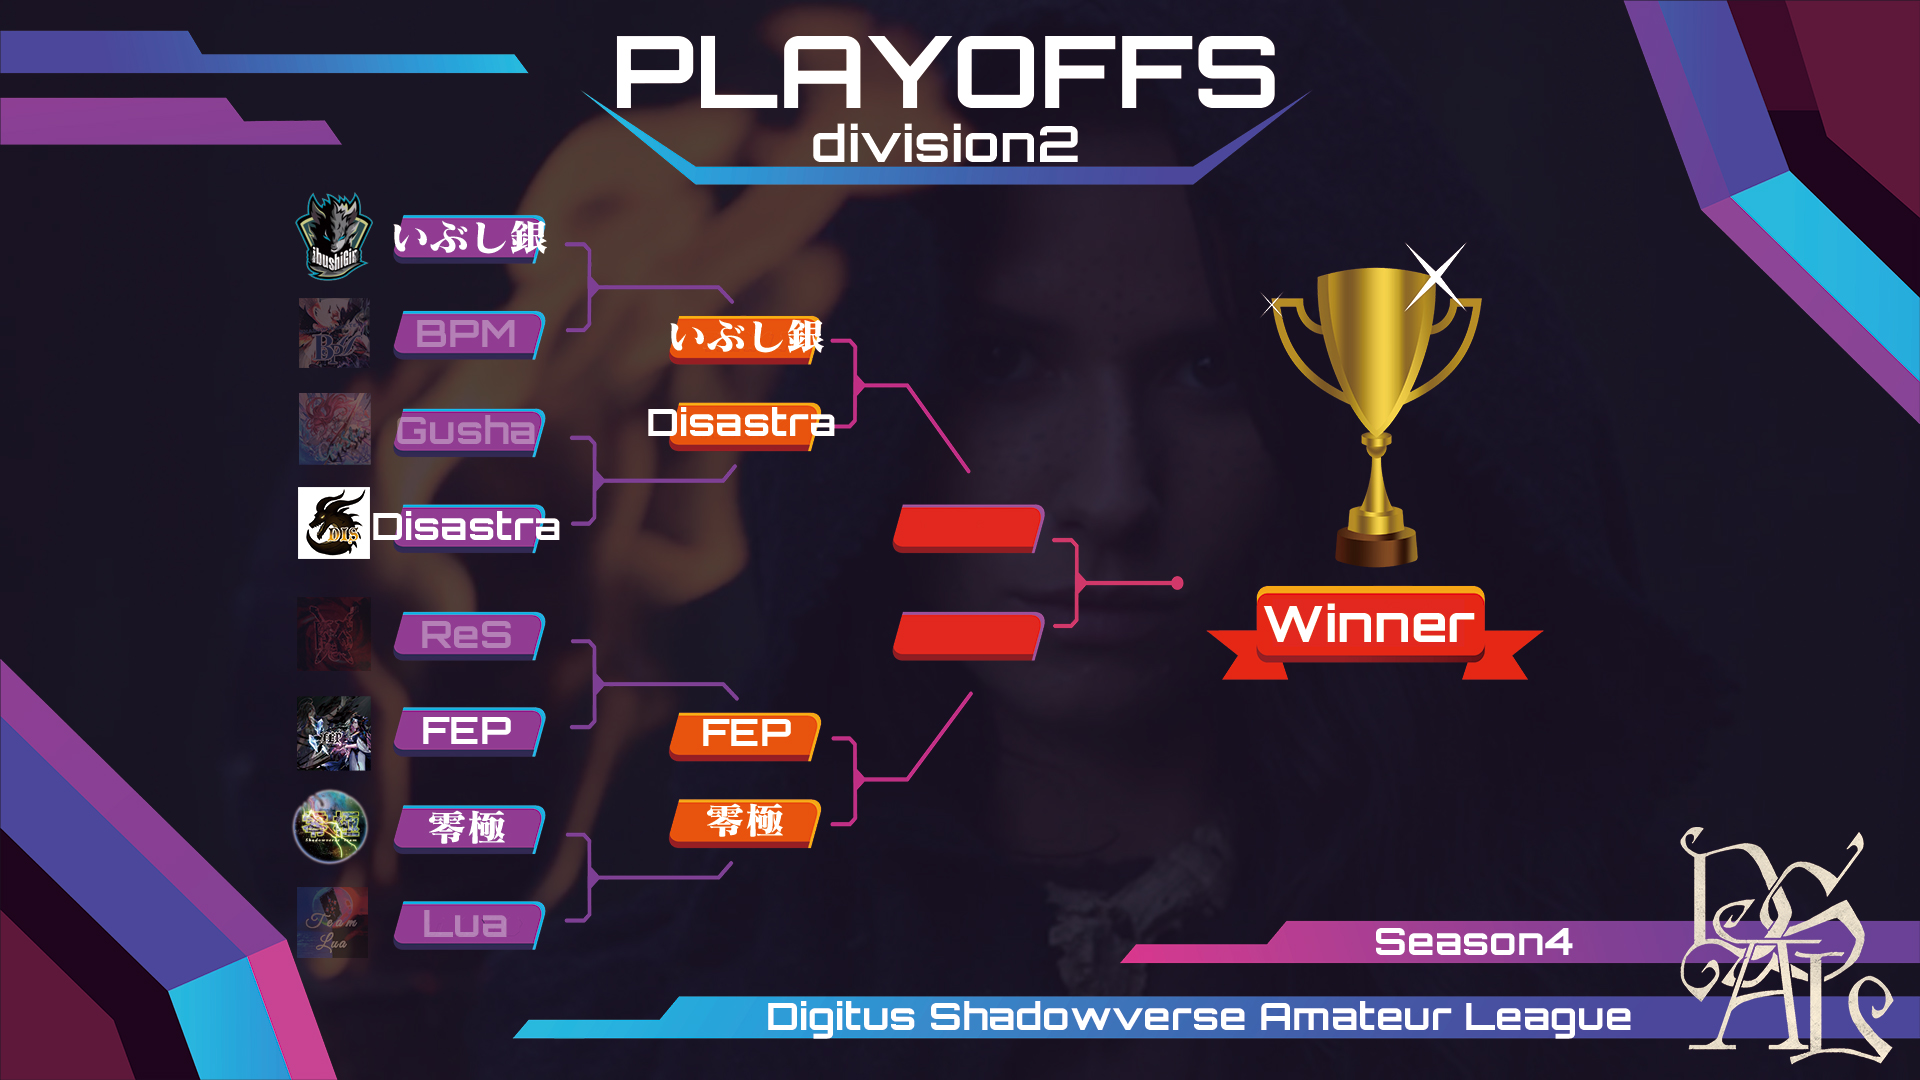 DSAL Div2 season2 playoff